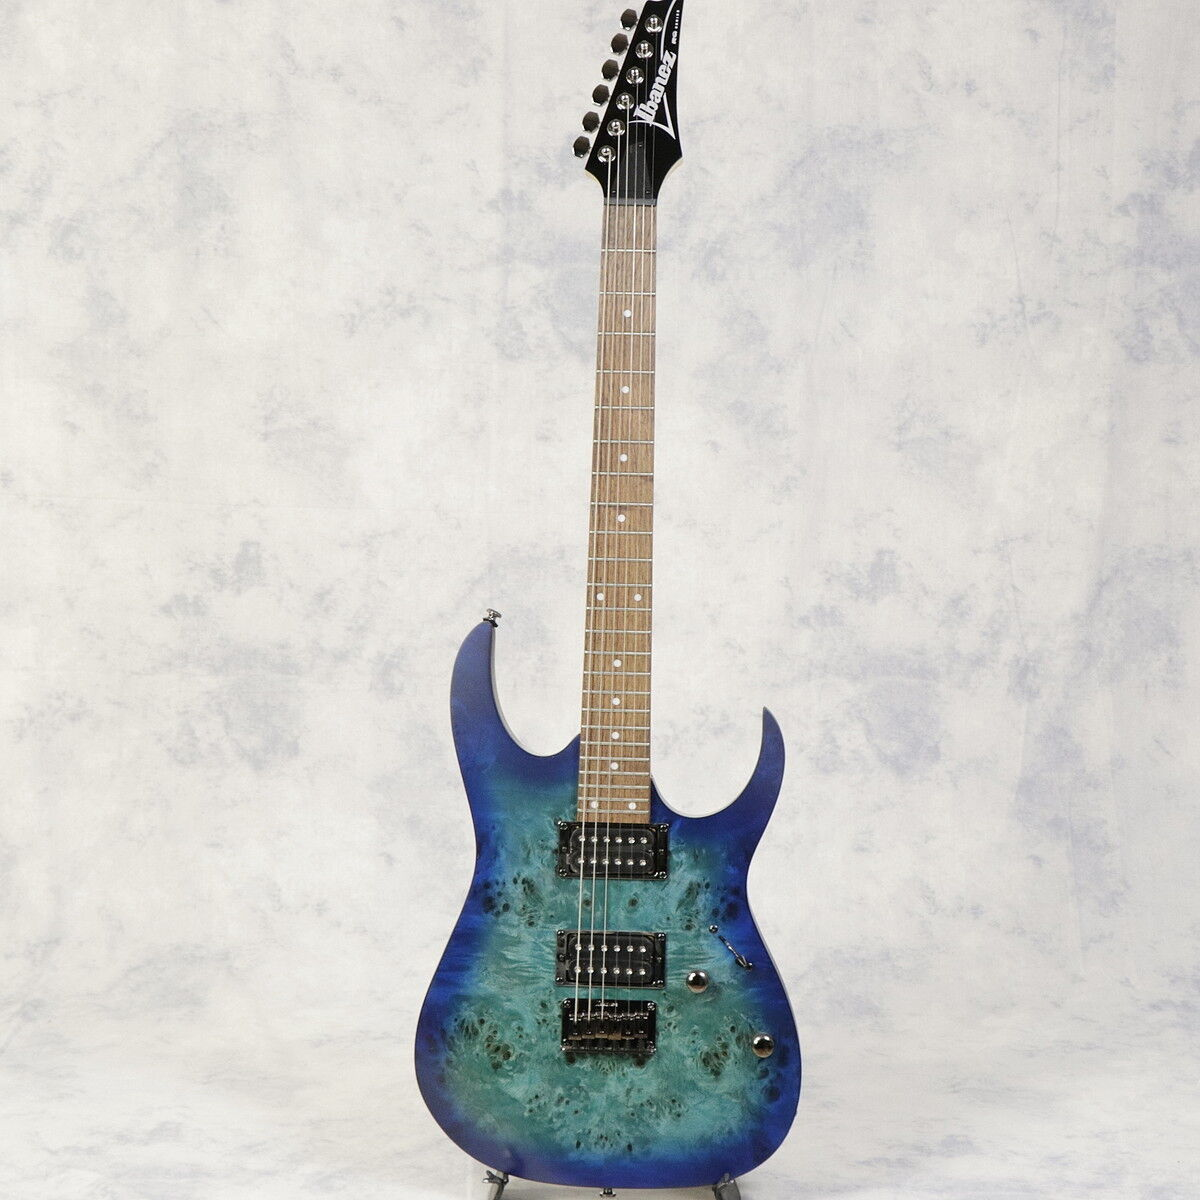 New Ibanez RG421PB Sapphire bluee Flat (SBF) Electric Guitar From Japan